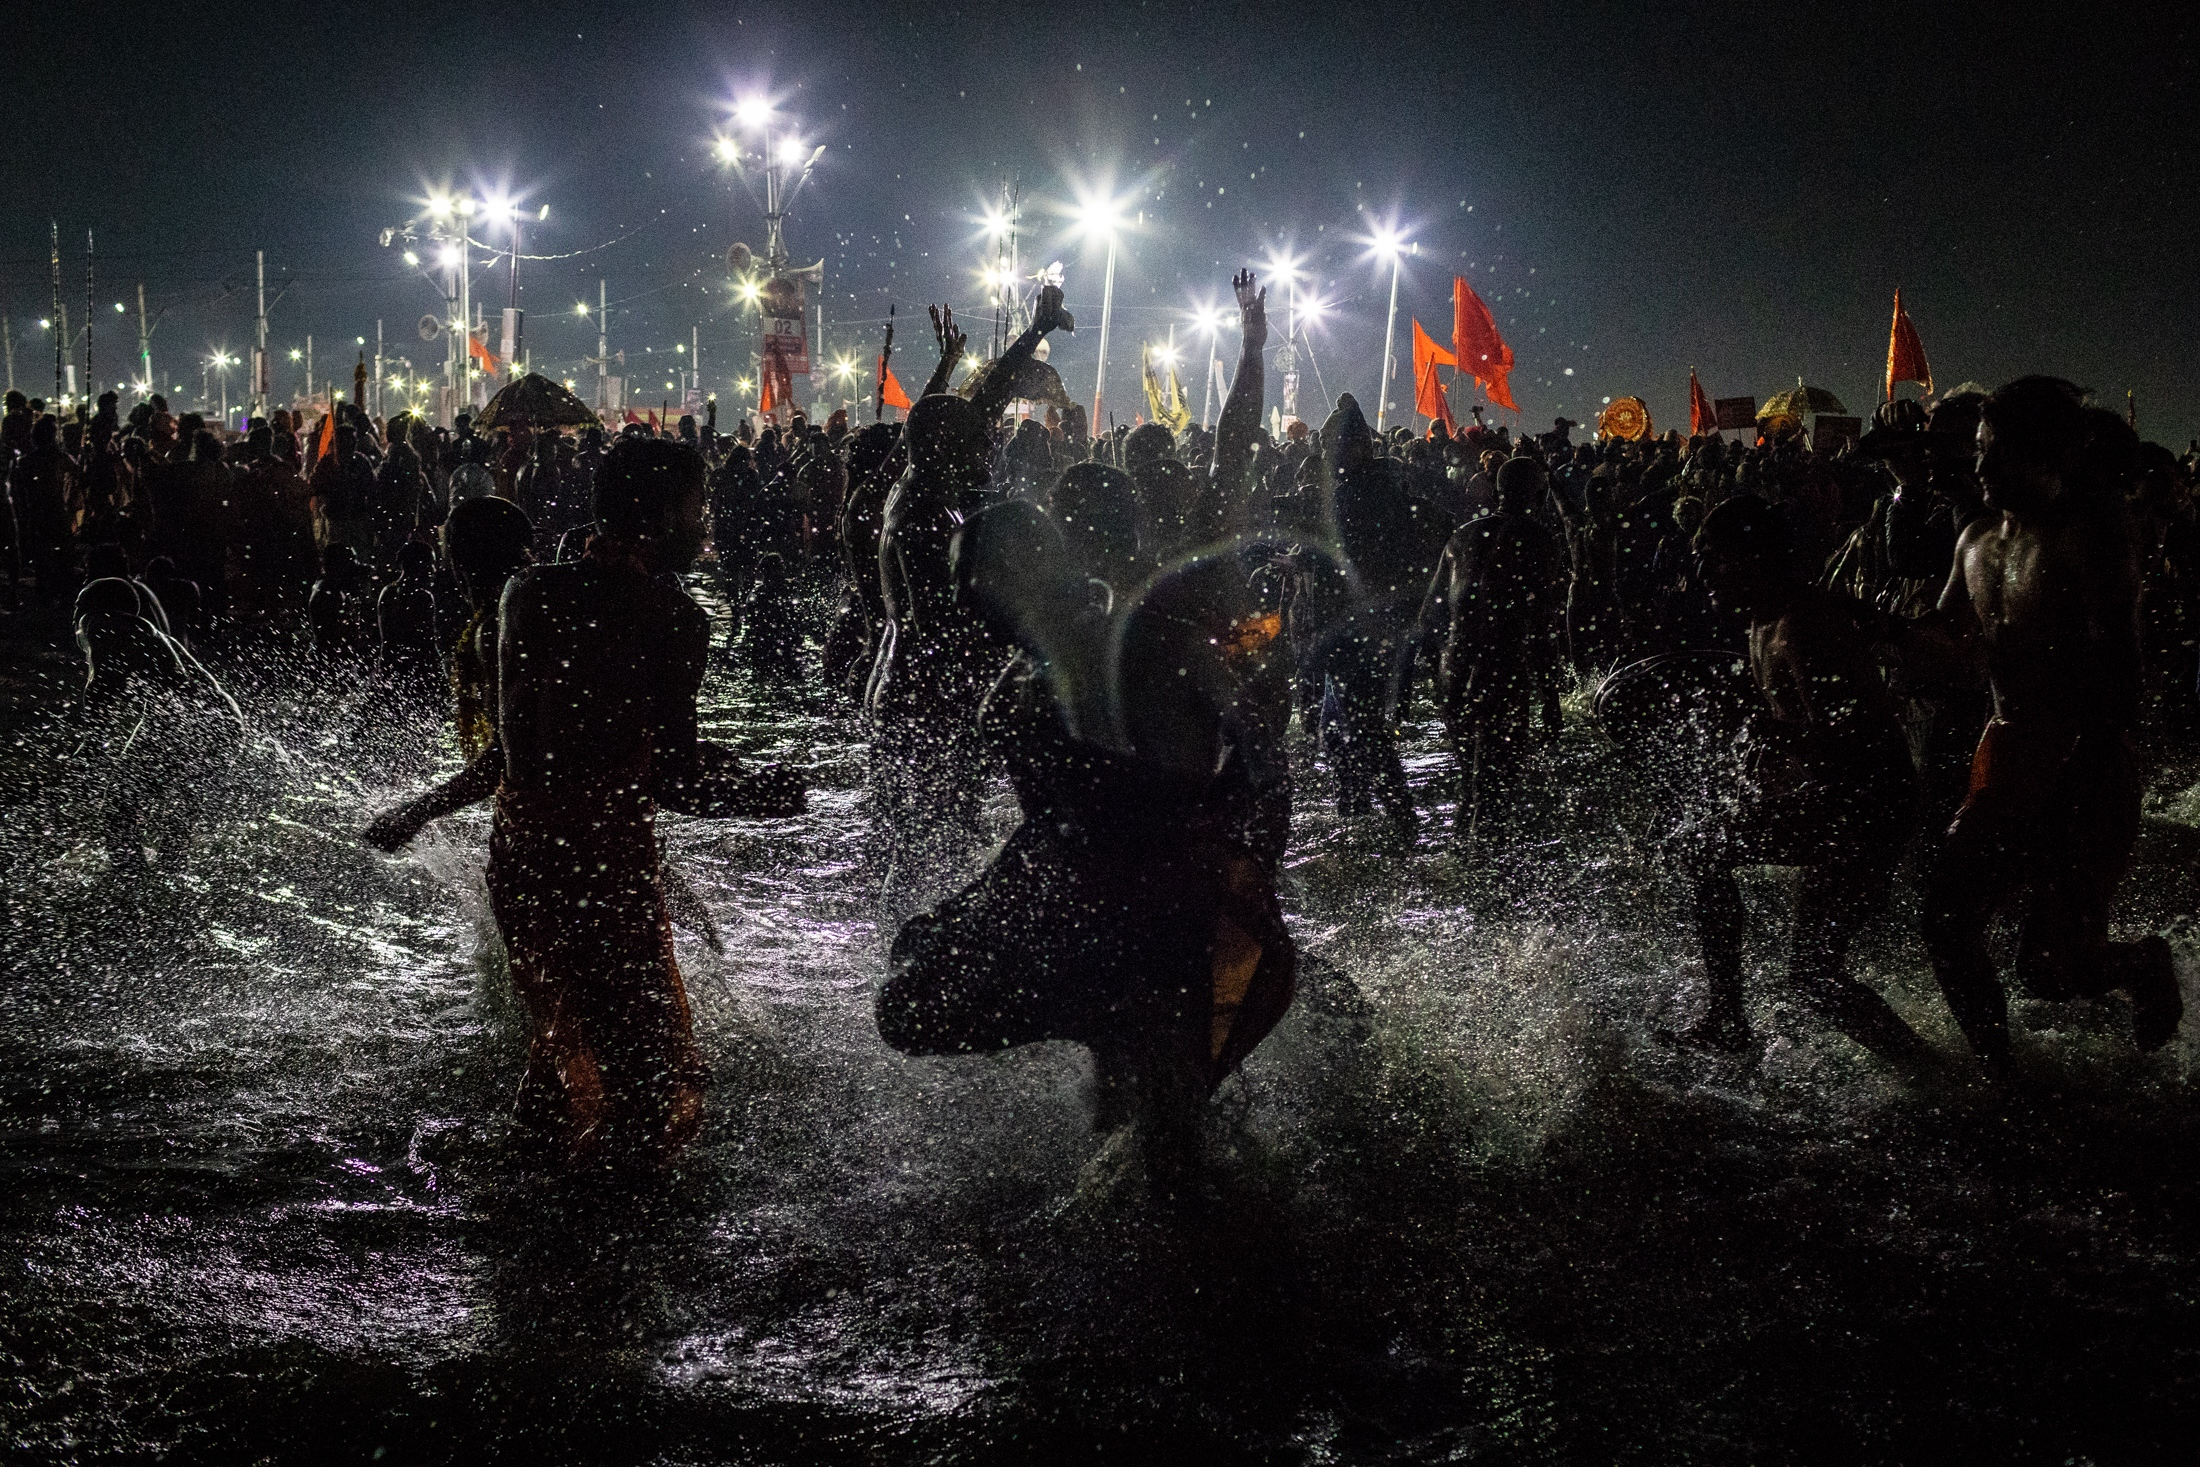 A crowd runs on the Sangam waters during the holy bath during the Kumbh Mela, Prayagraj, February 2019.